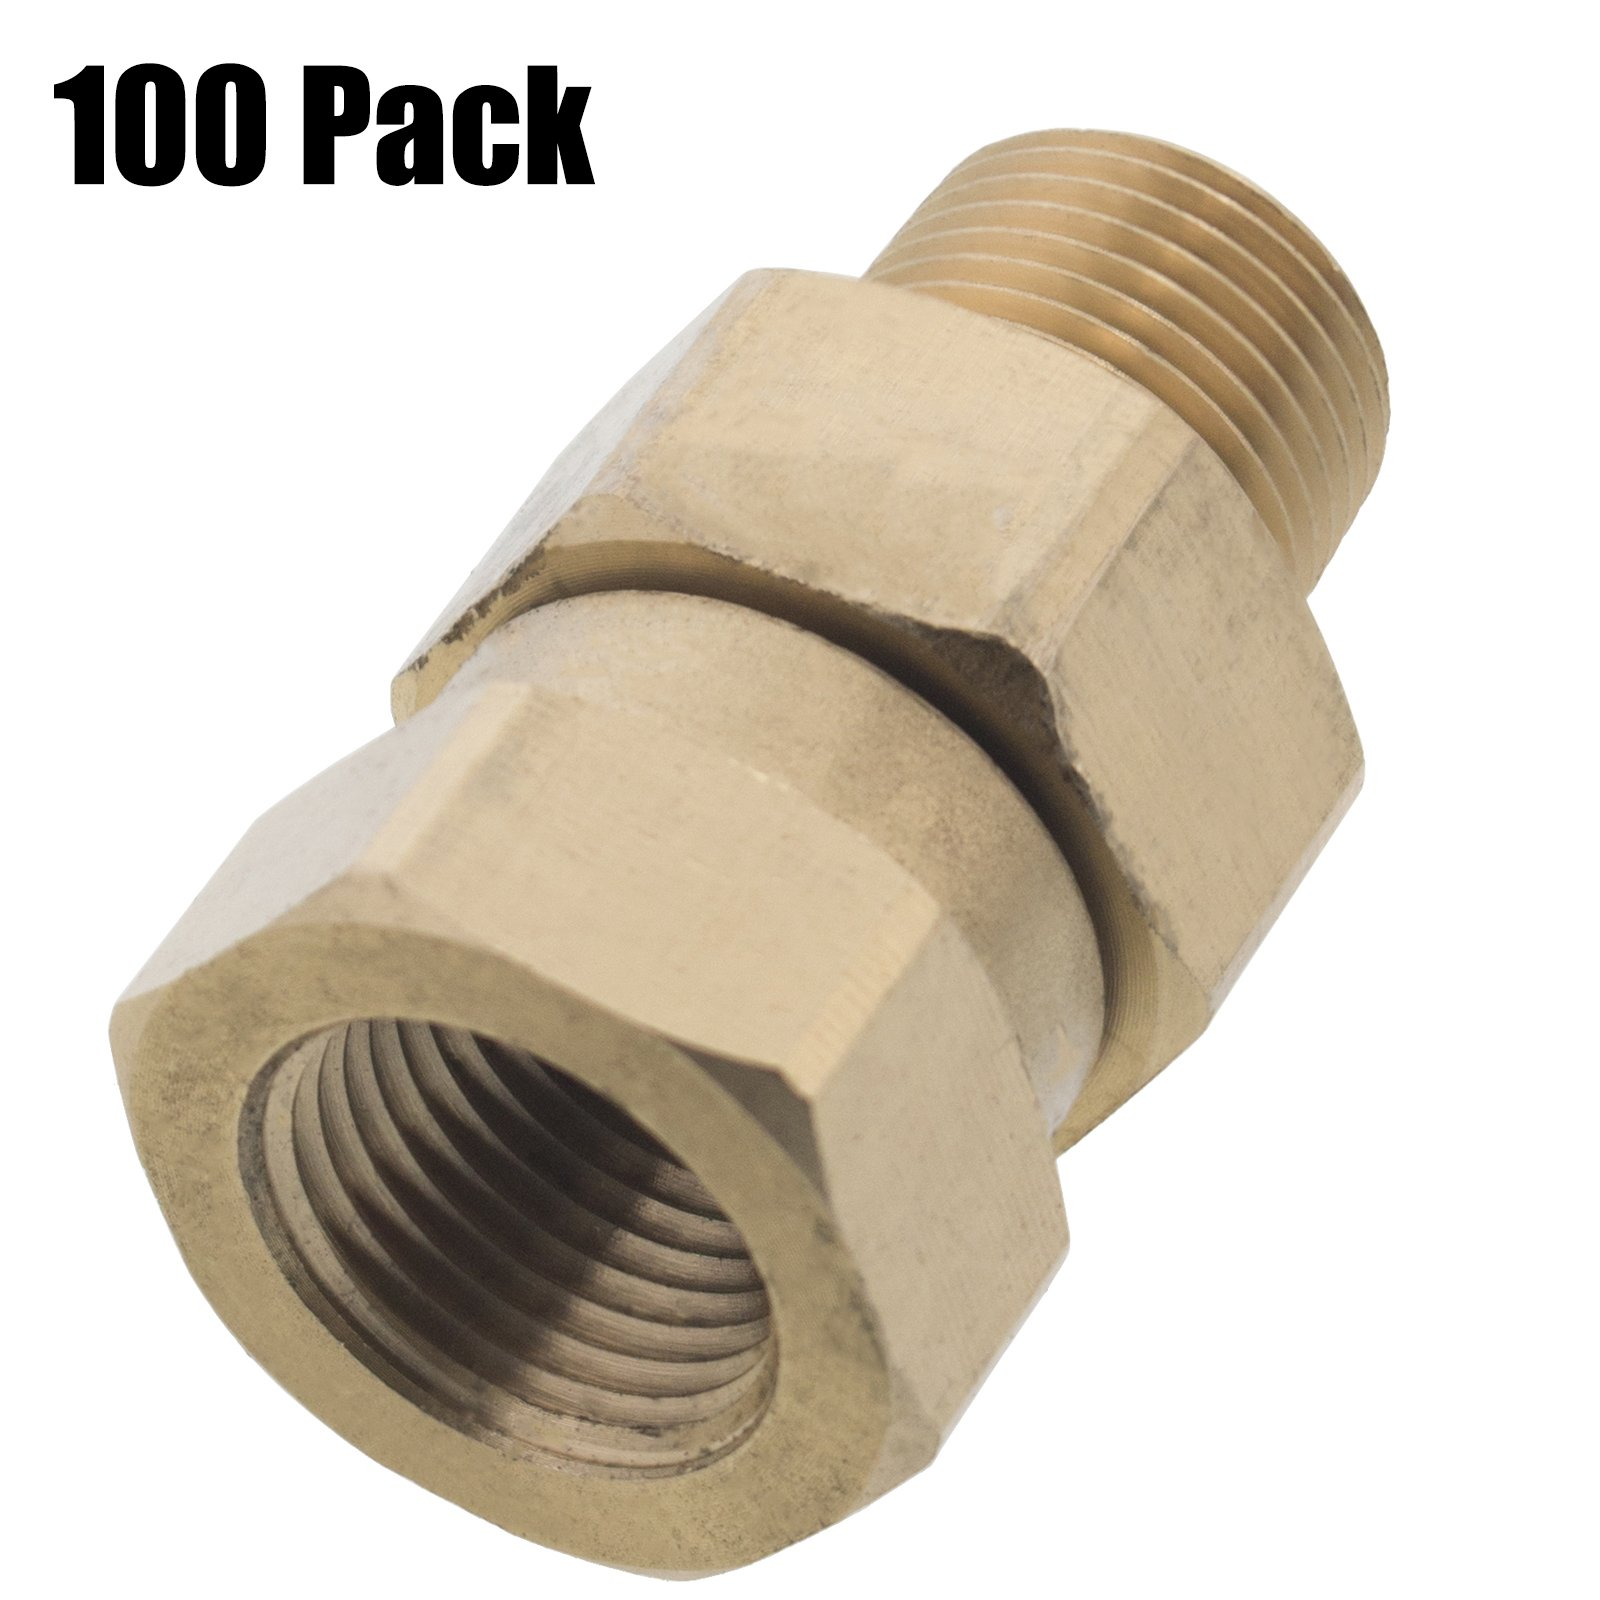 Erie Tools 100 Pressure Washer 3/8in. Male to Female NPT Brass Swivel Coupler 4000 PSI by Erie Tools